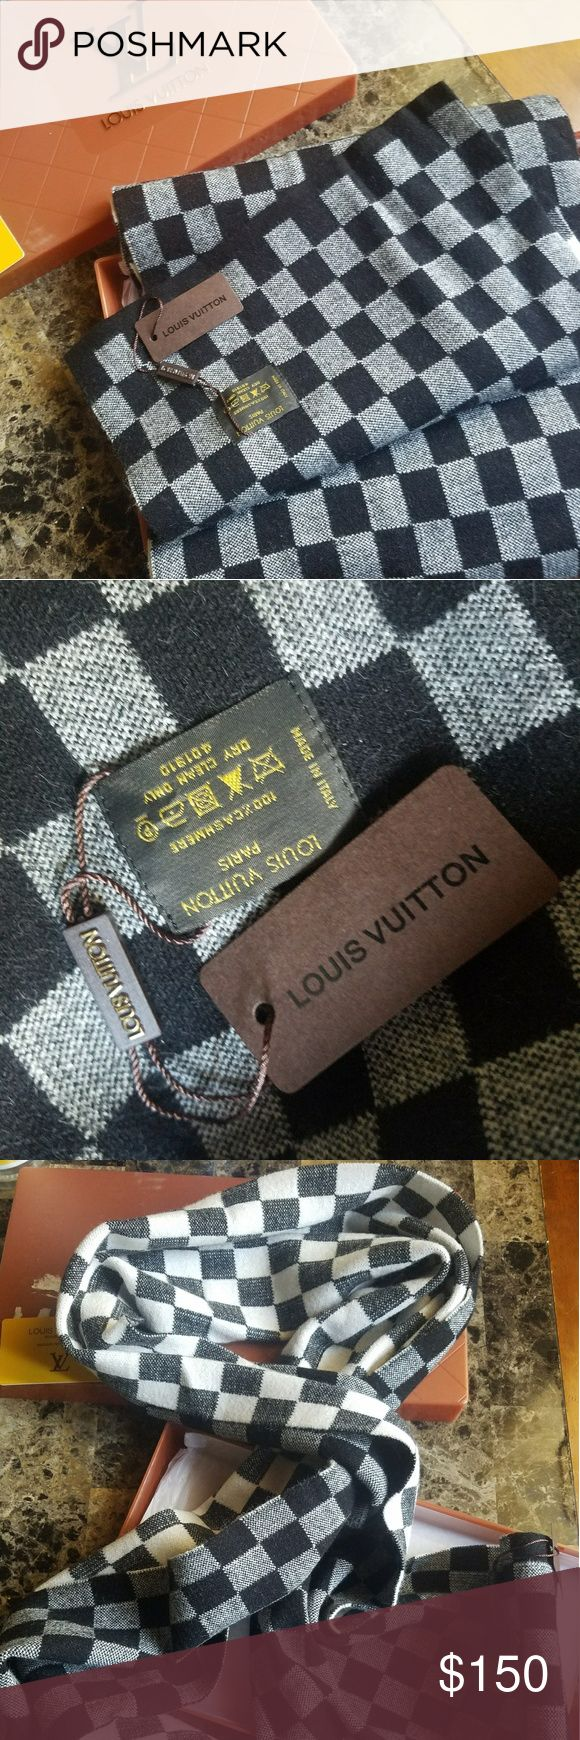 Authentic Checkered Louis Vuitton Scarf 100% Authentic Given as Gift. Never Used, just had it stored!! 10/10 condition  This is a long/large scarf- guaranteed. Nice checkered LV Scarf  Comes with original box and authenticity card. Louis Vuitton Accessories Scarves & Wraps